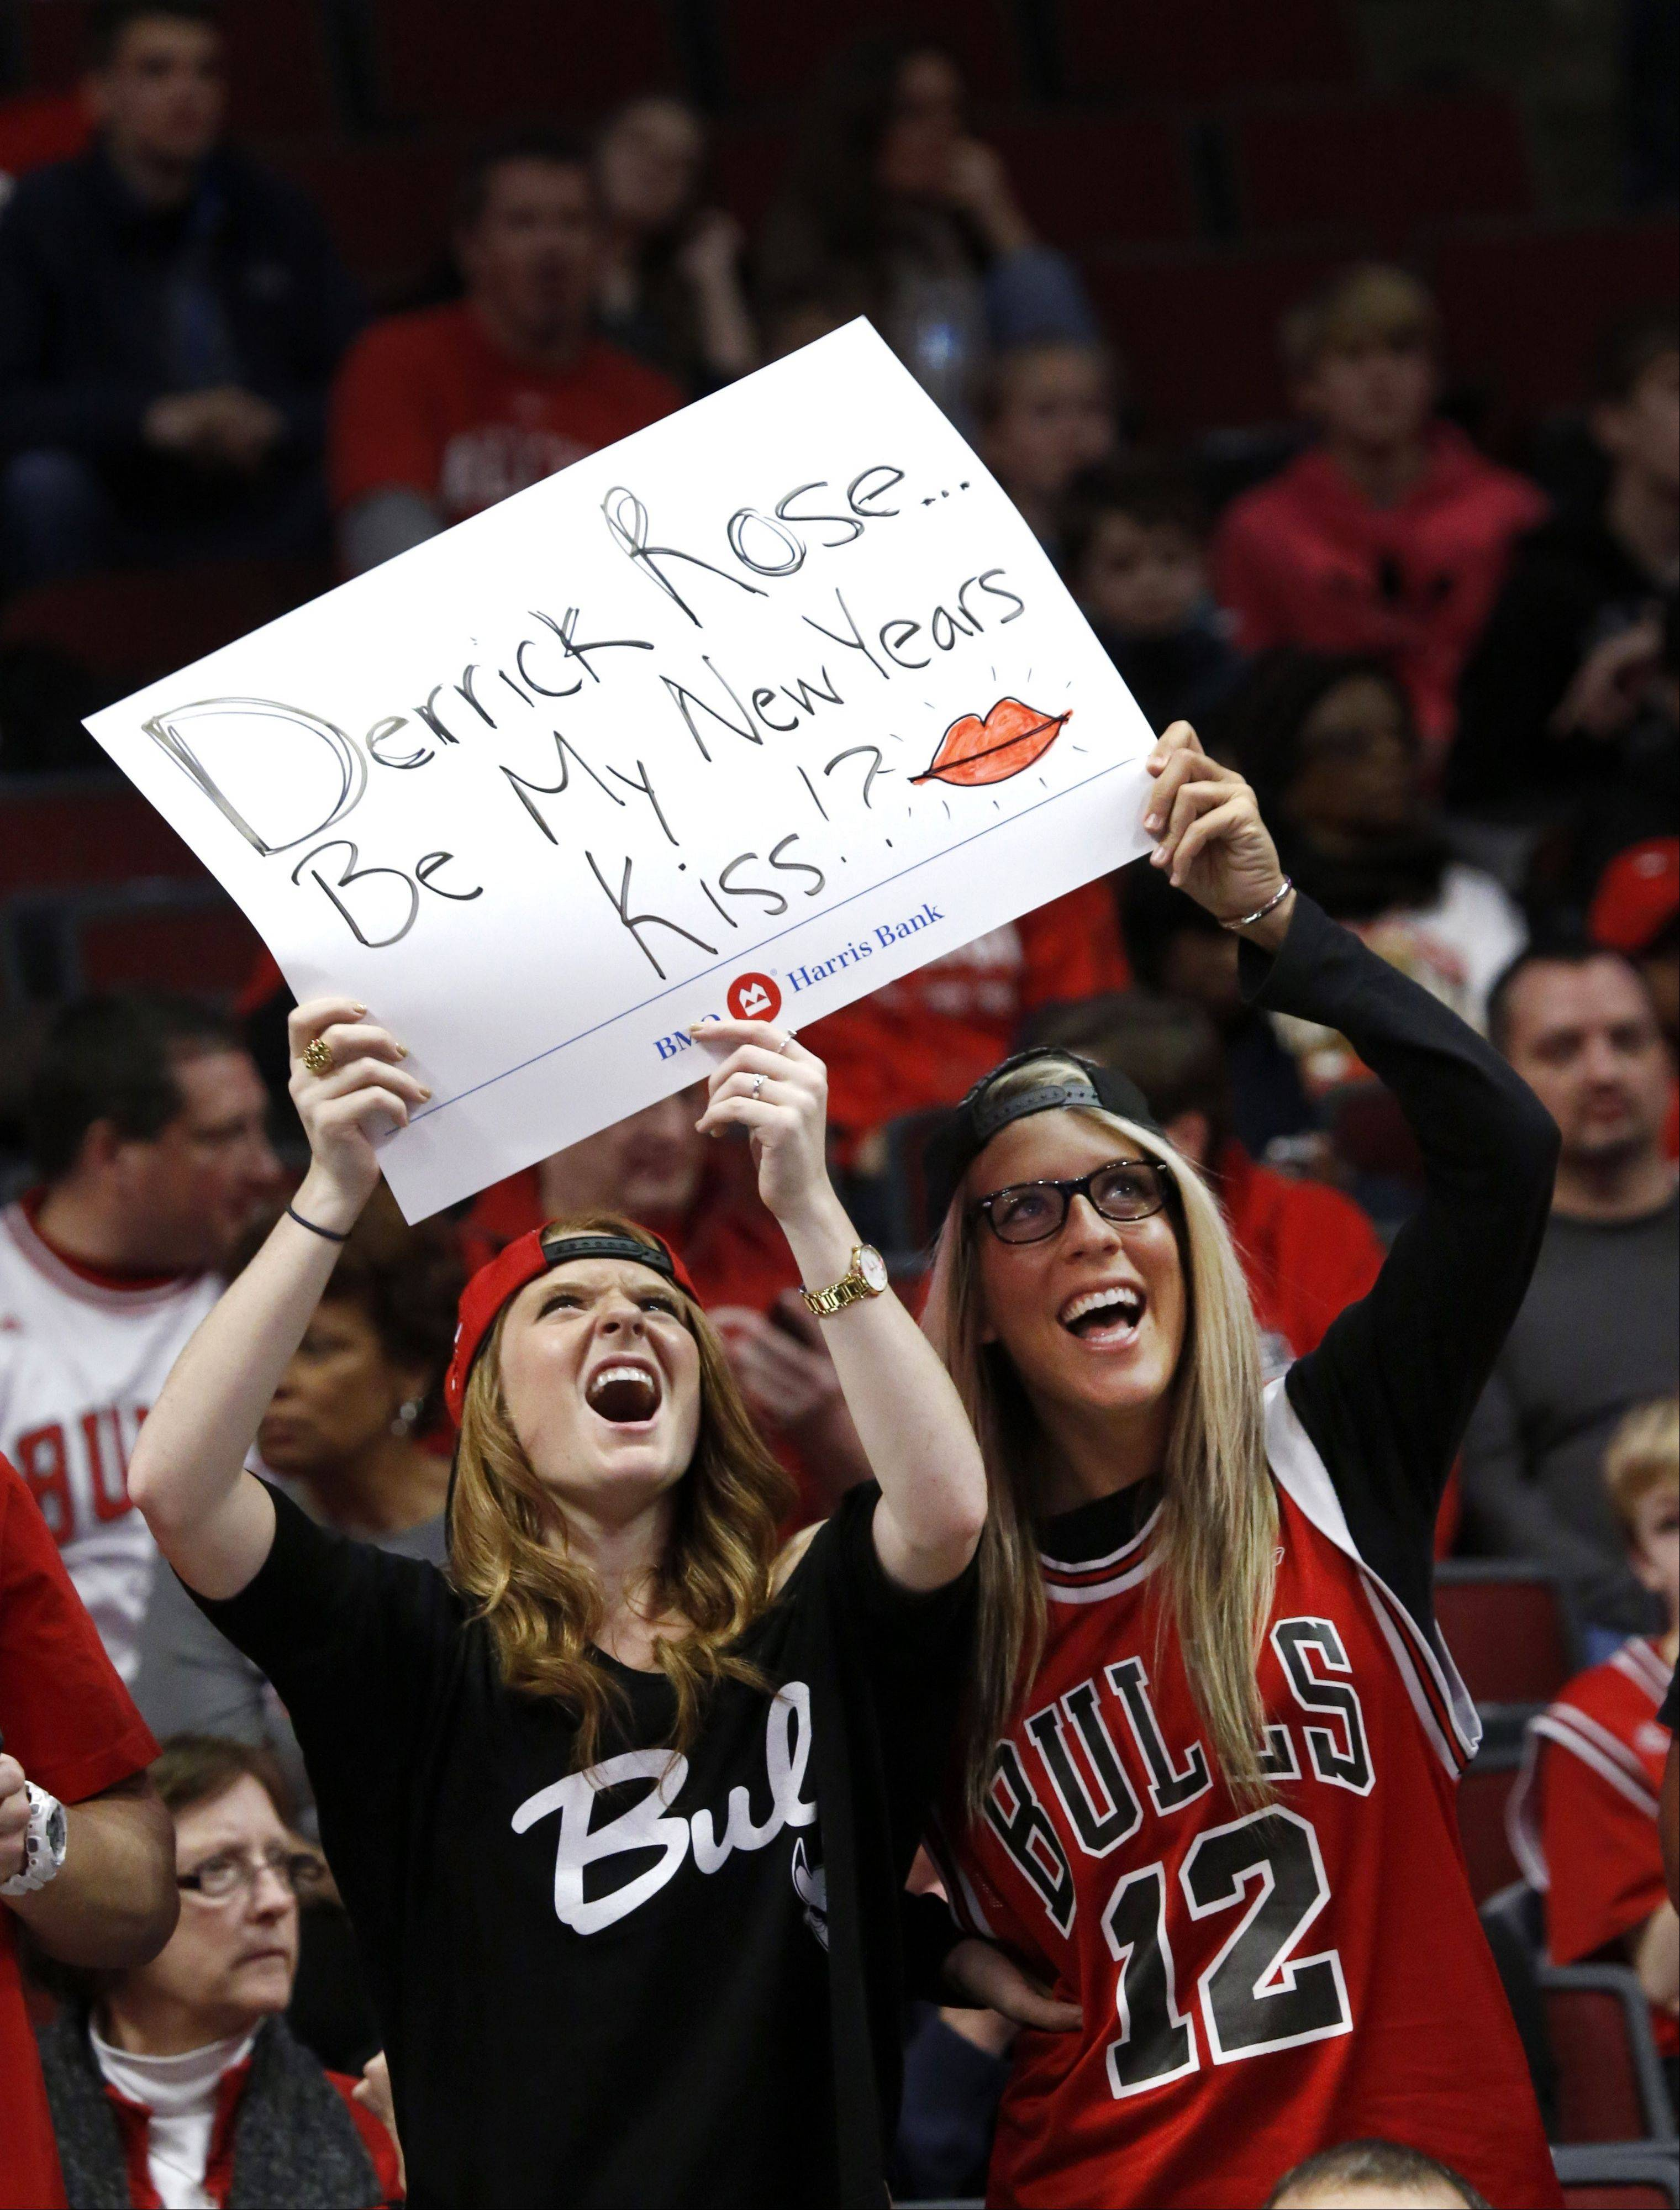 Two Chicago Bulls fans hold up a sign and watch themselves on the big screen before an NBA basketball between the Bulls and the Charlotte Bobcats on Monday, Dec. 31, 2012, in Chicago. The Bobcats won 91-81.